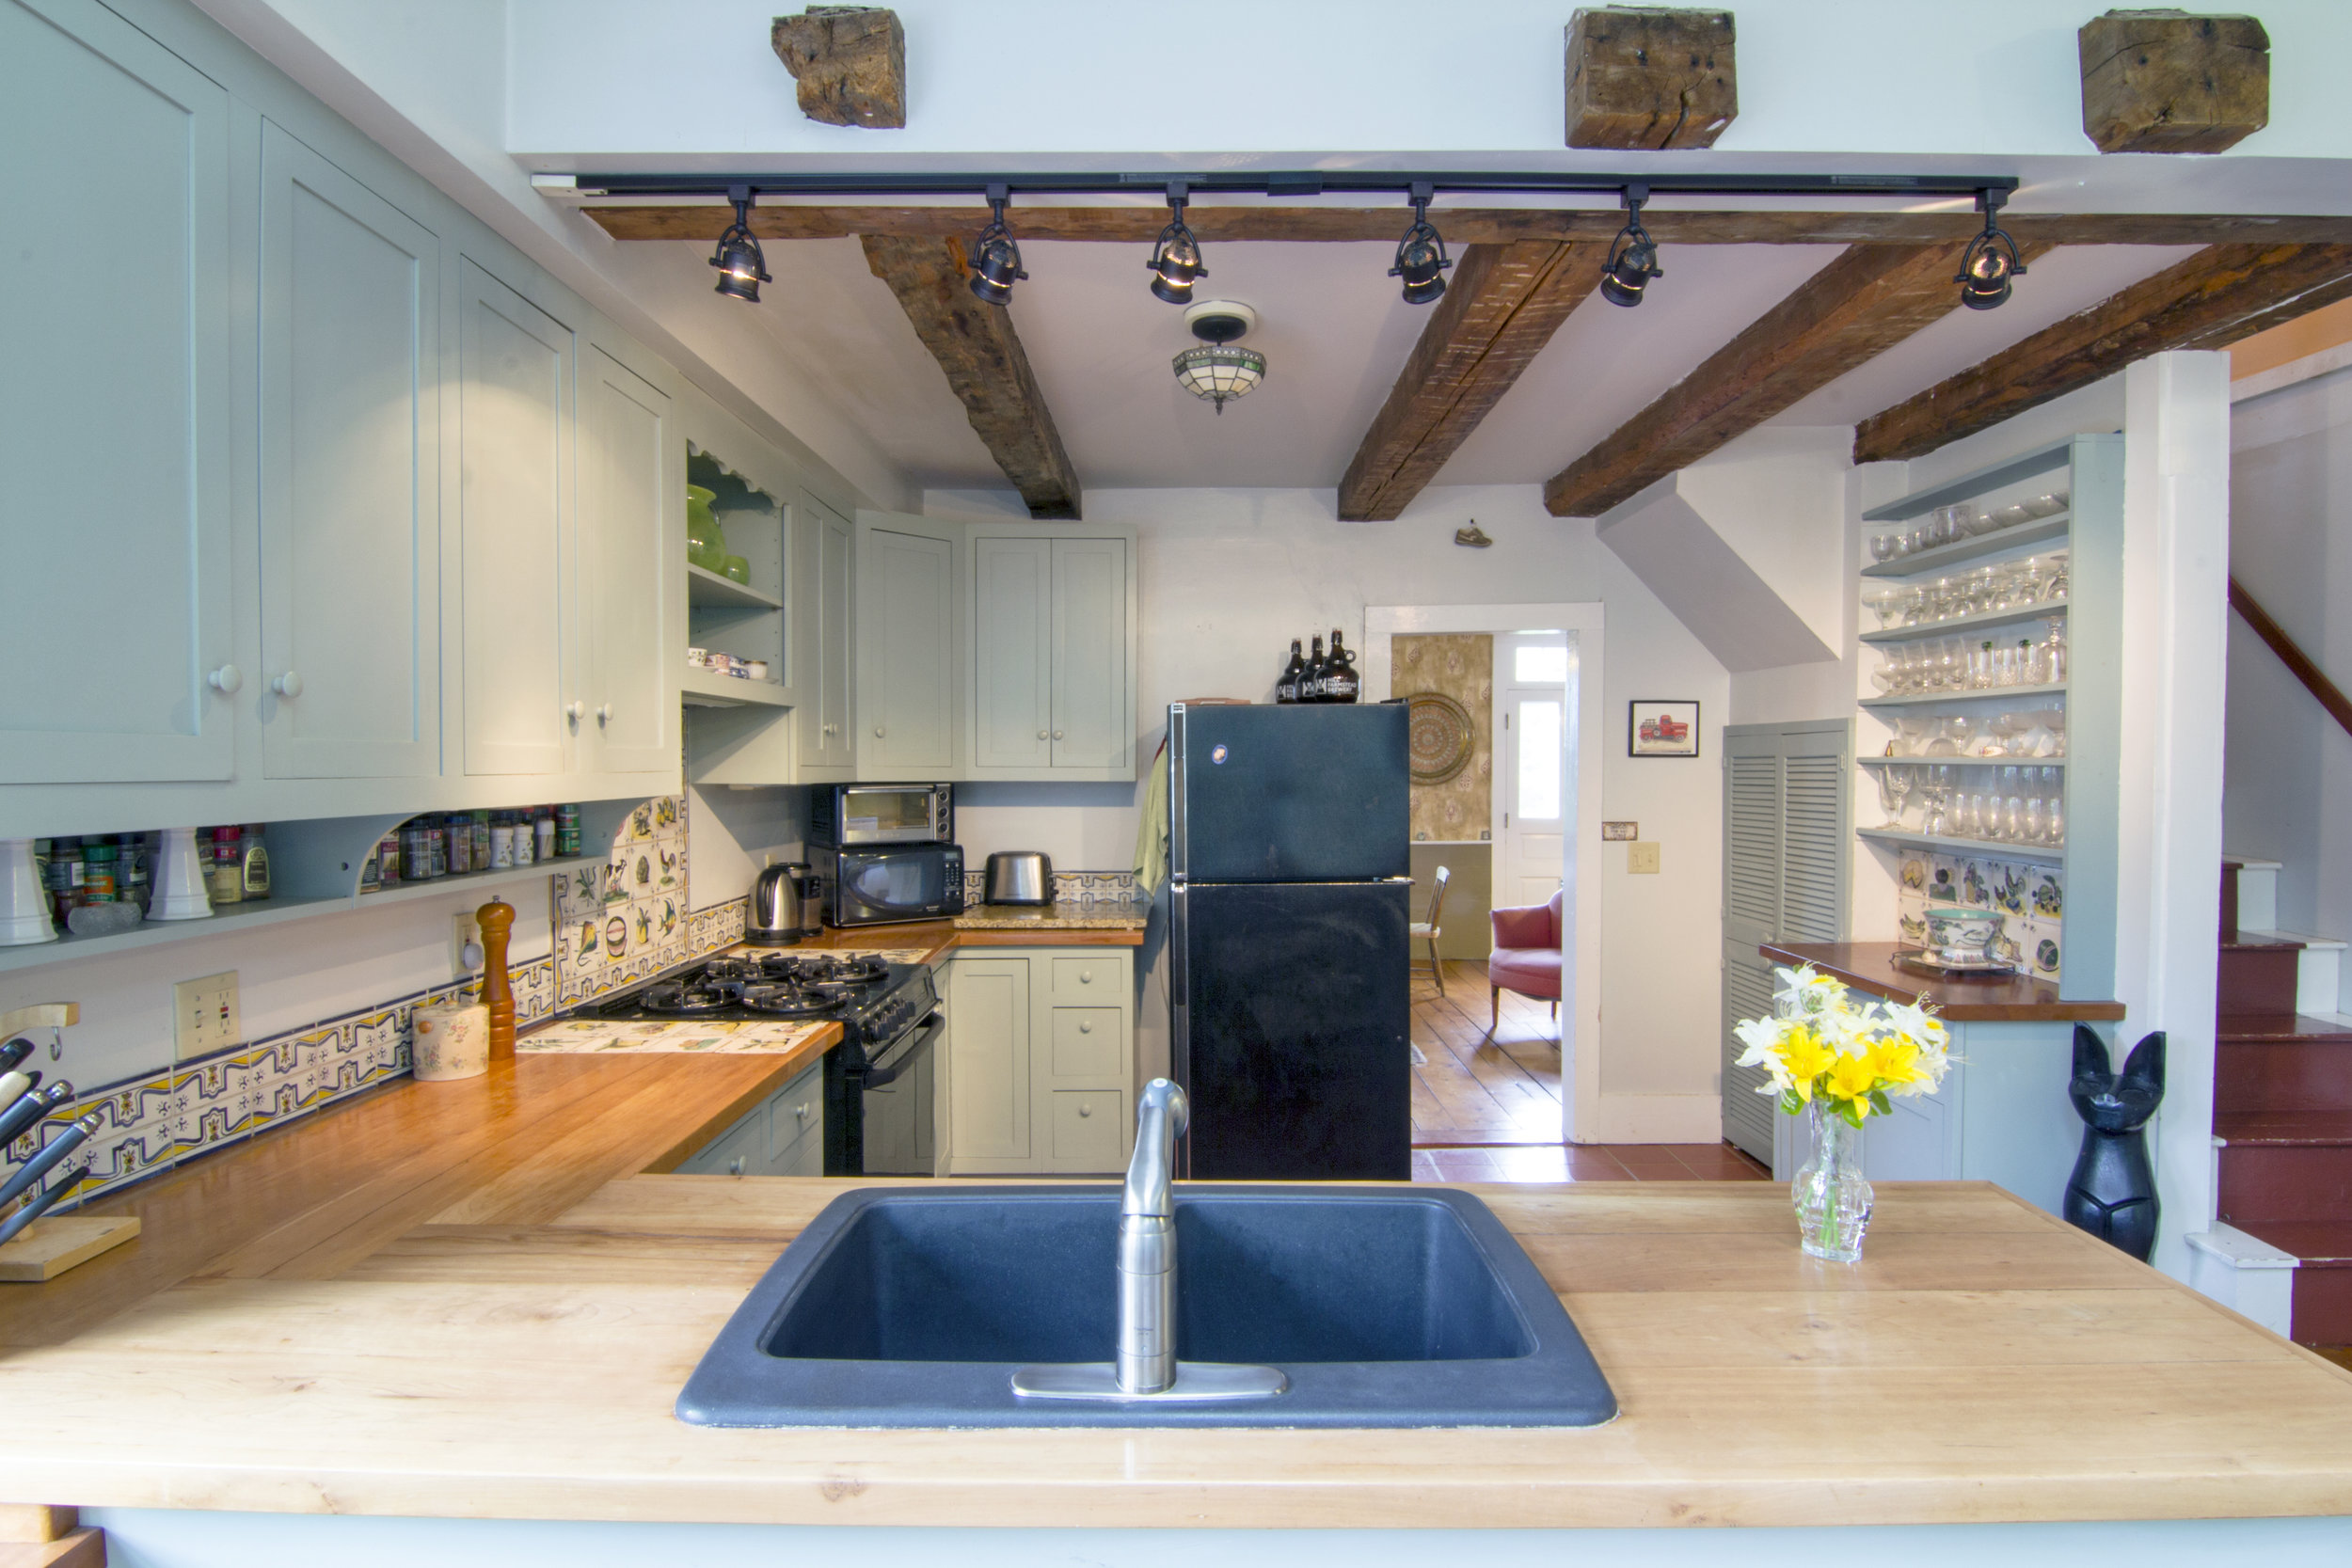 IMG_4478 Fifield Kitchen In.jpg